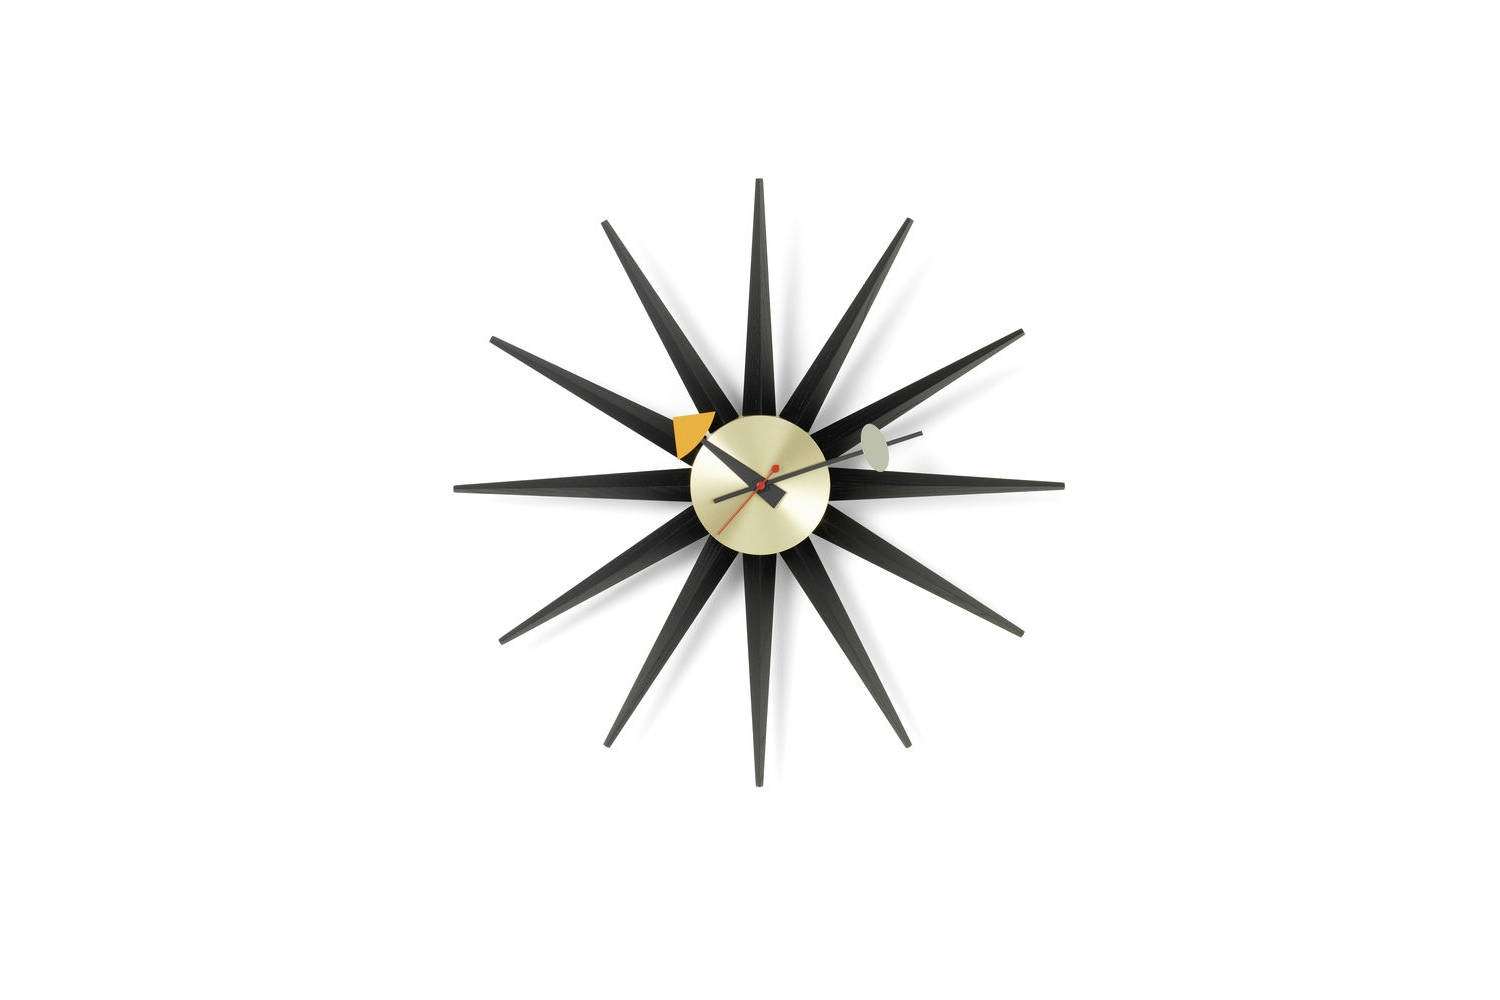 Sunburst Clock - Black/Brass by George Nelson for Vitra